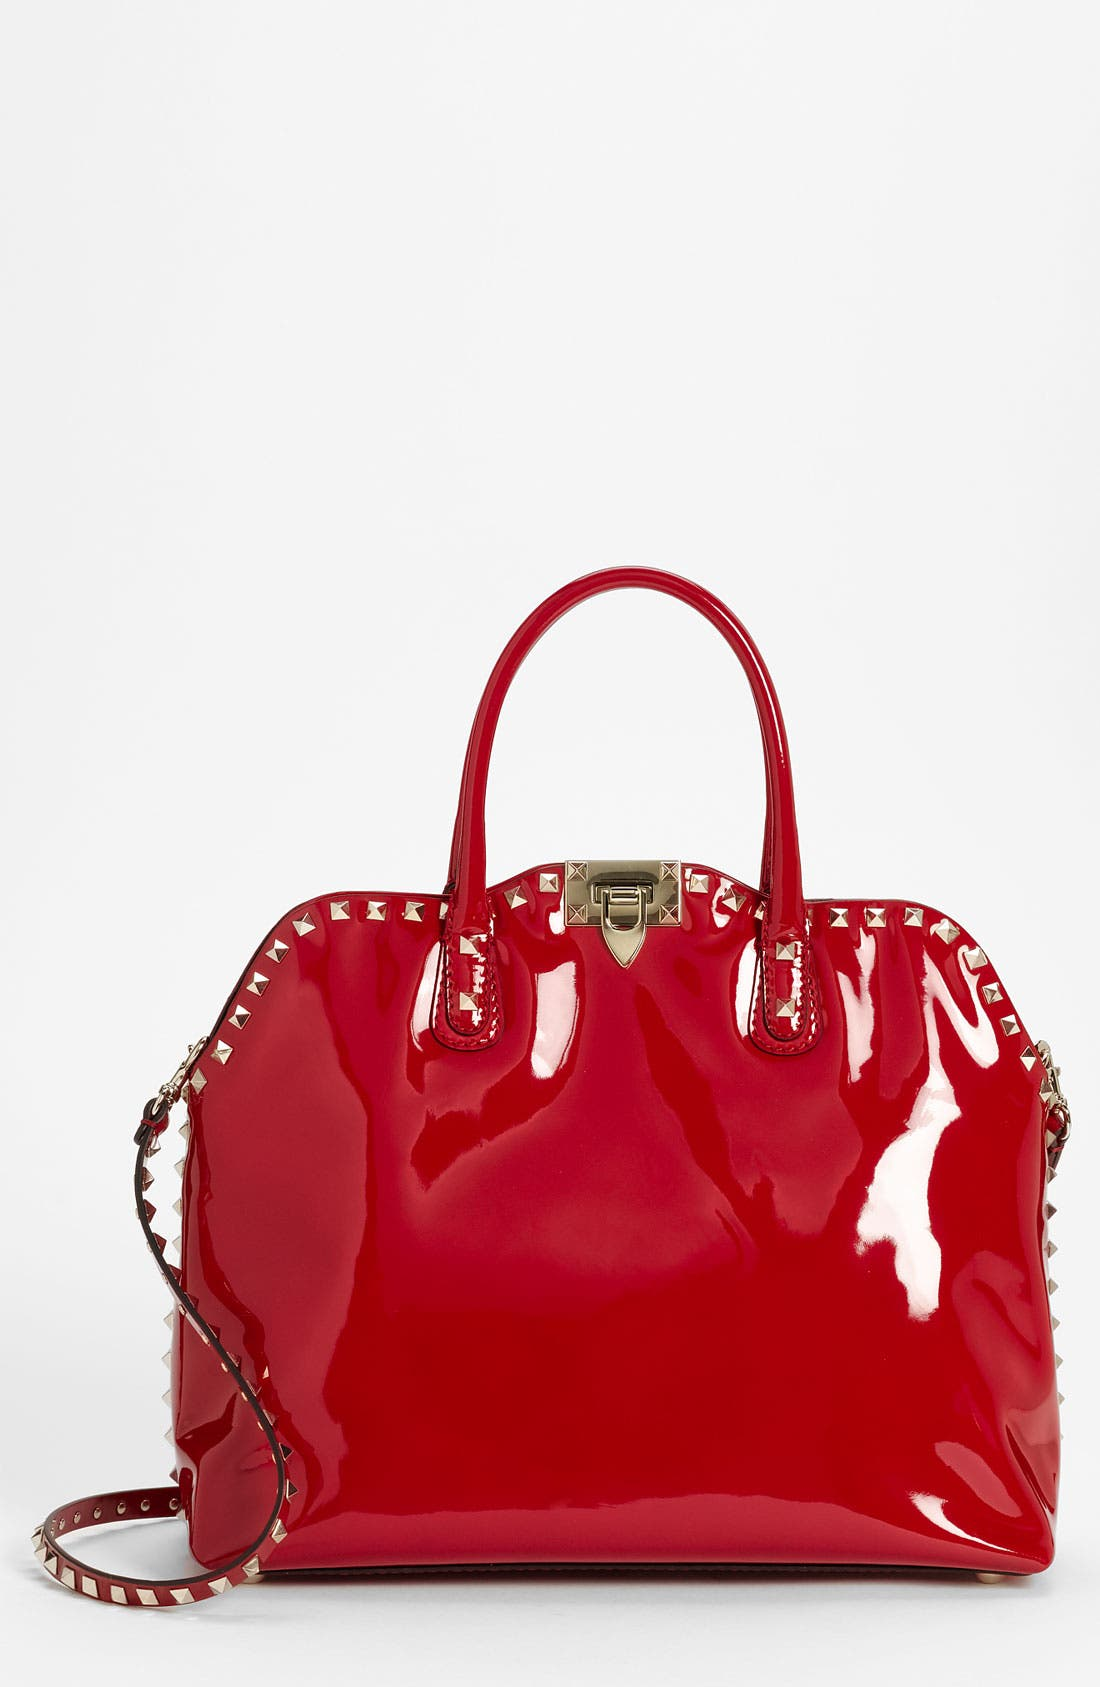 Alternate Image 1 Selected - Valentino 'Rockstud' Patent Leather Dome Handbag